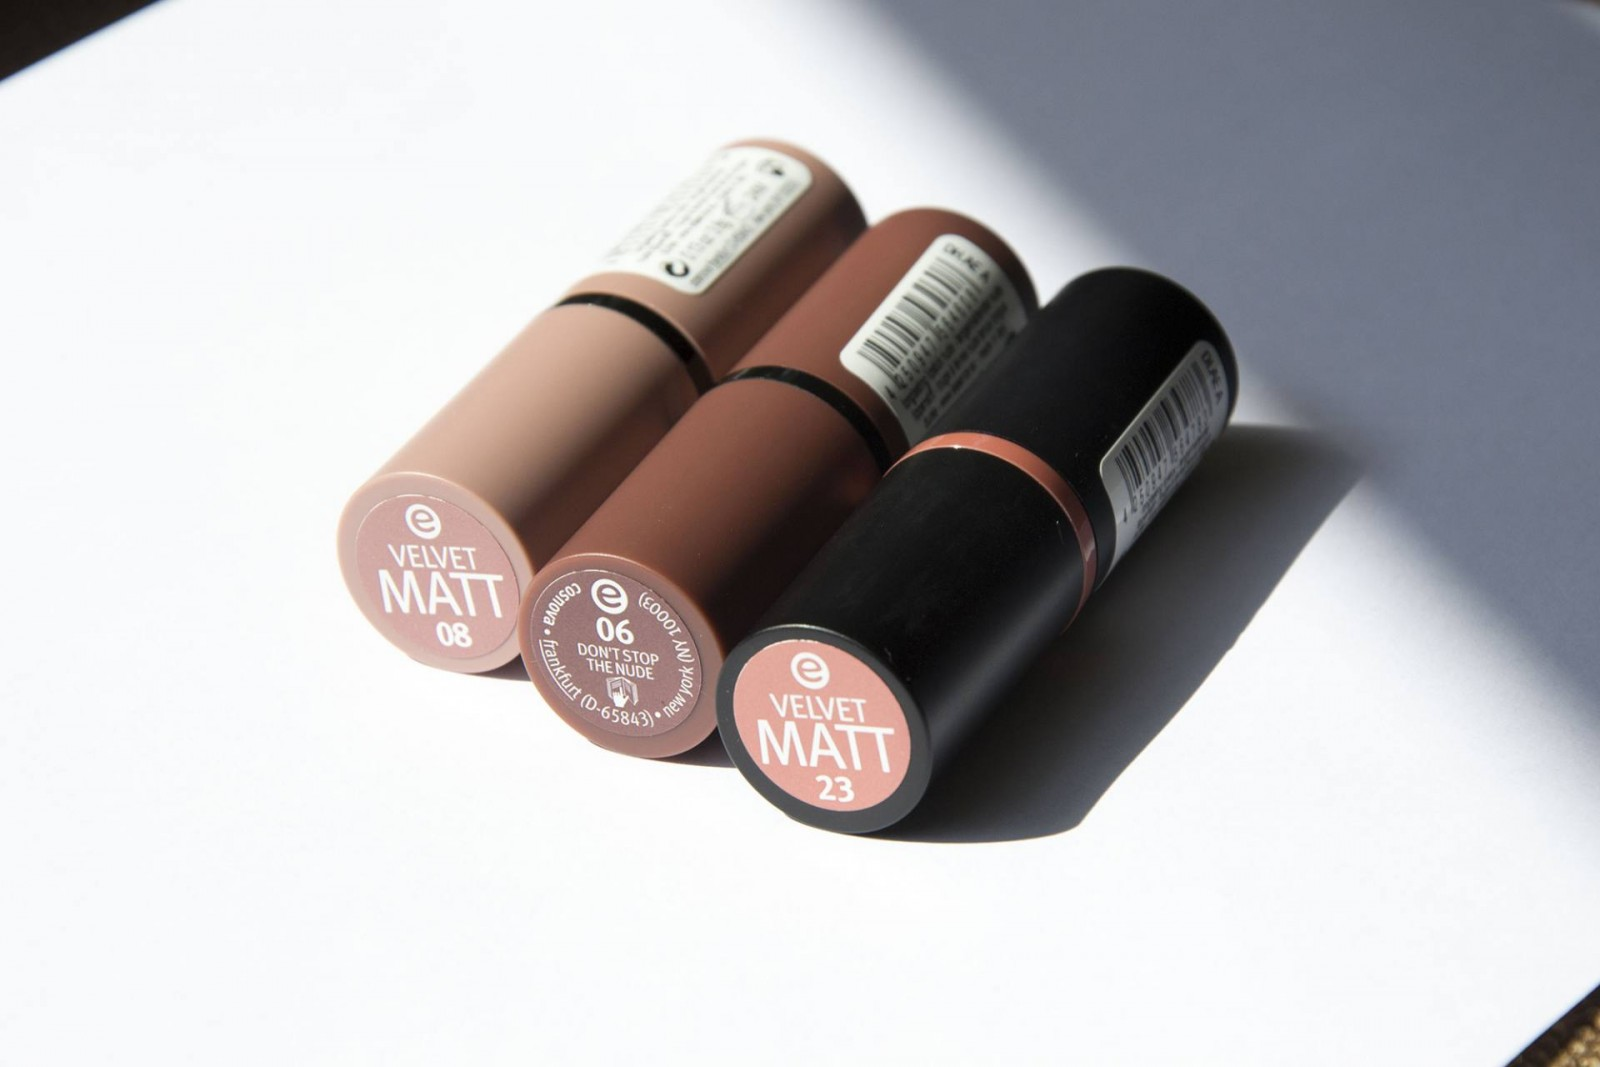 Essence nude lipsticks | Label of Suze